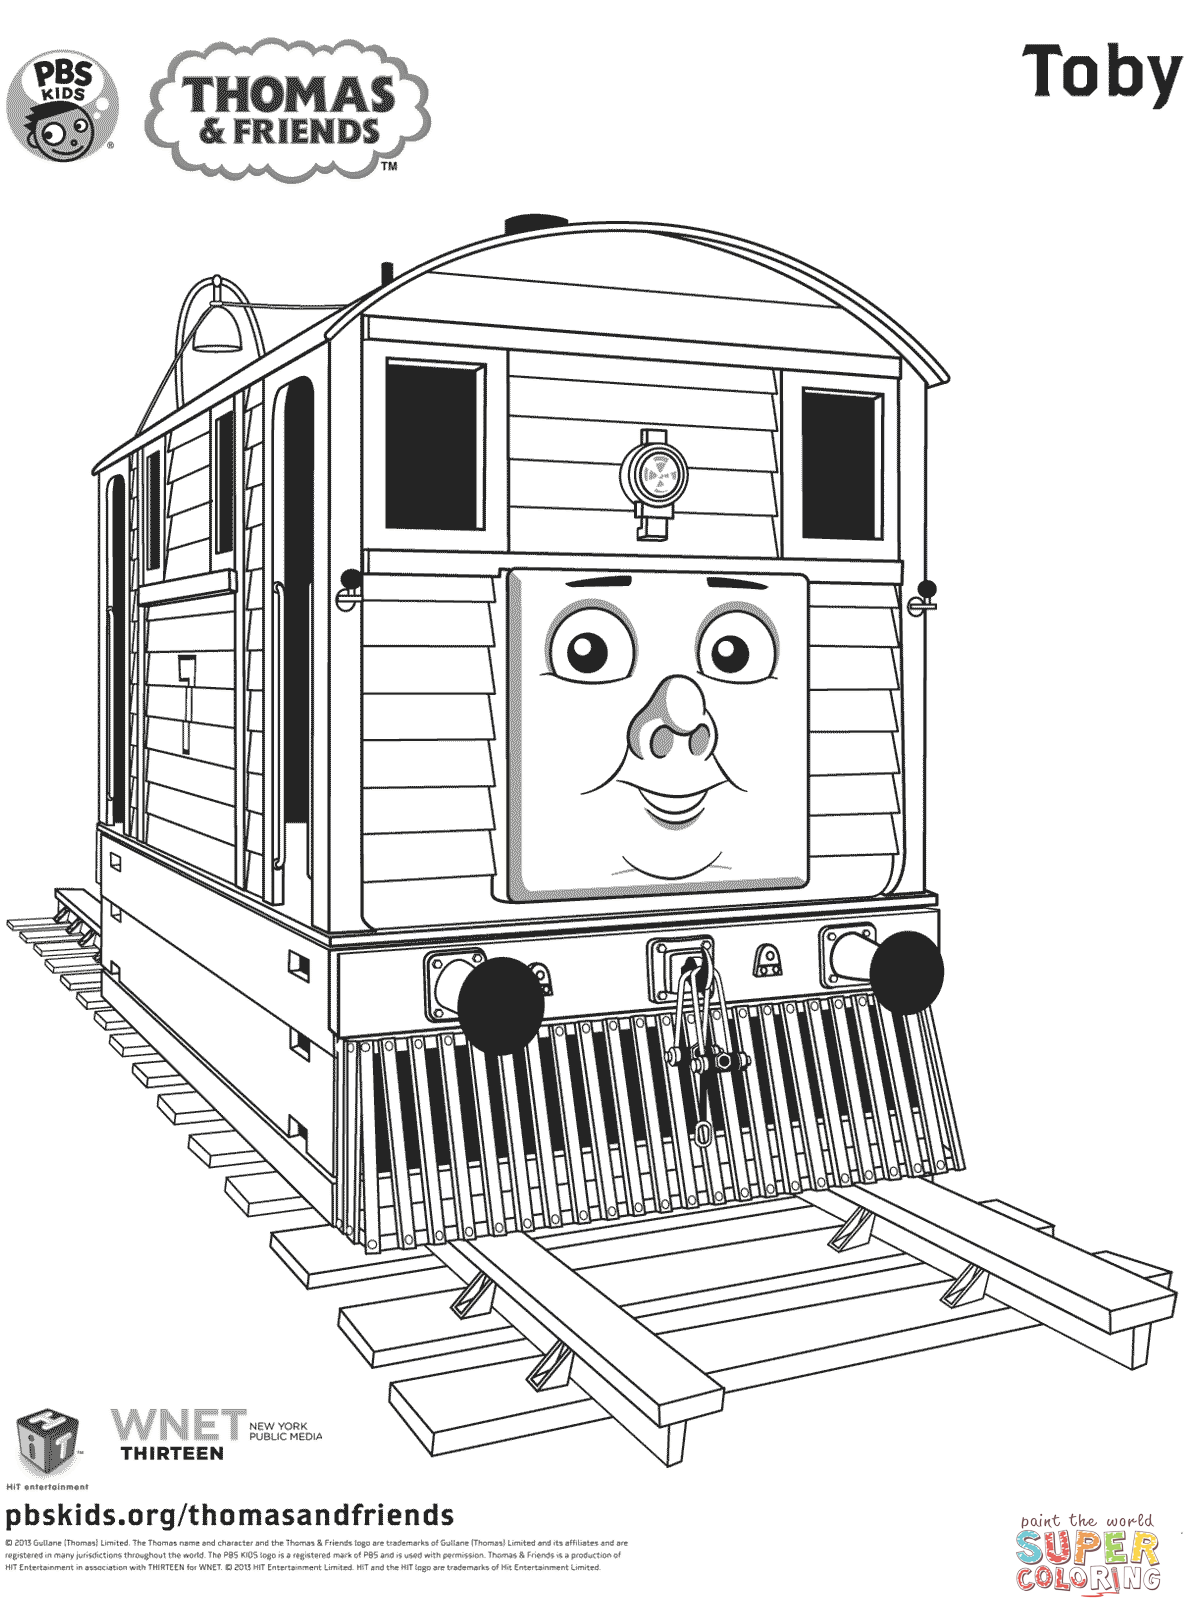 thomas and friends drawing pages toby from thomas friends coloring page free printable drawing pages thomas and friends